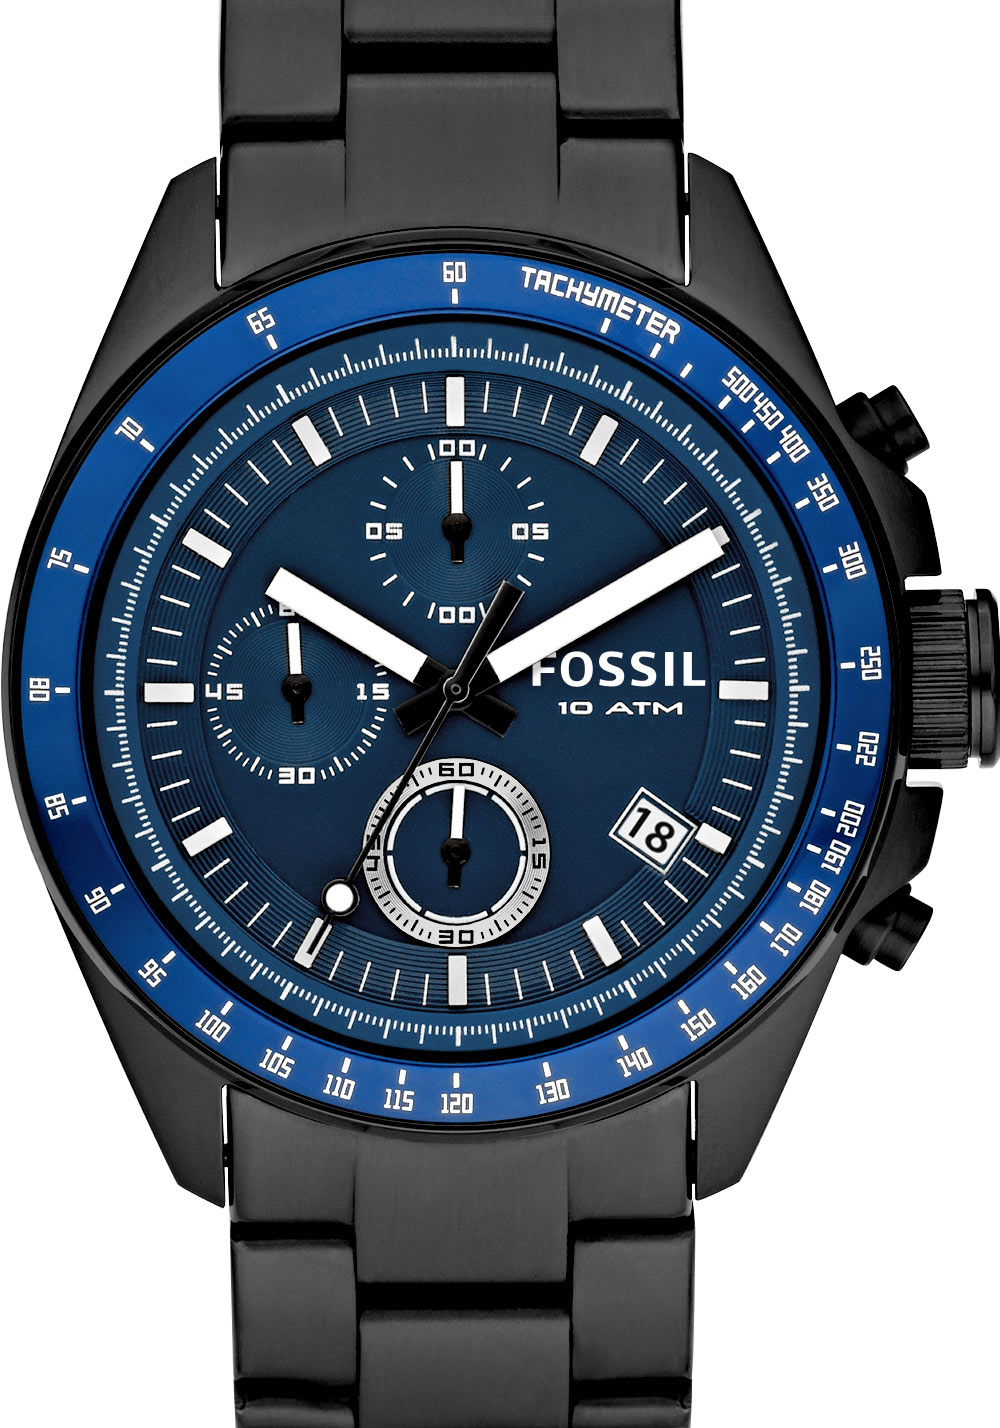 Watchismo times 08 2012 for Watchismo